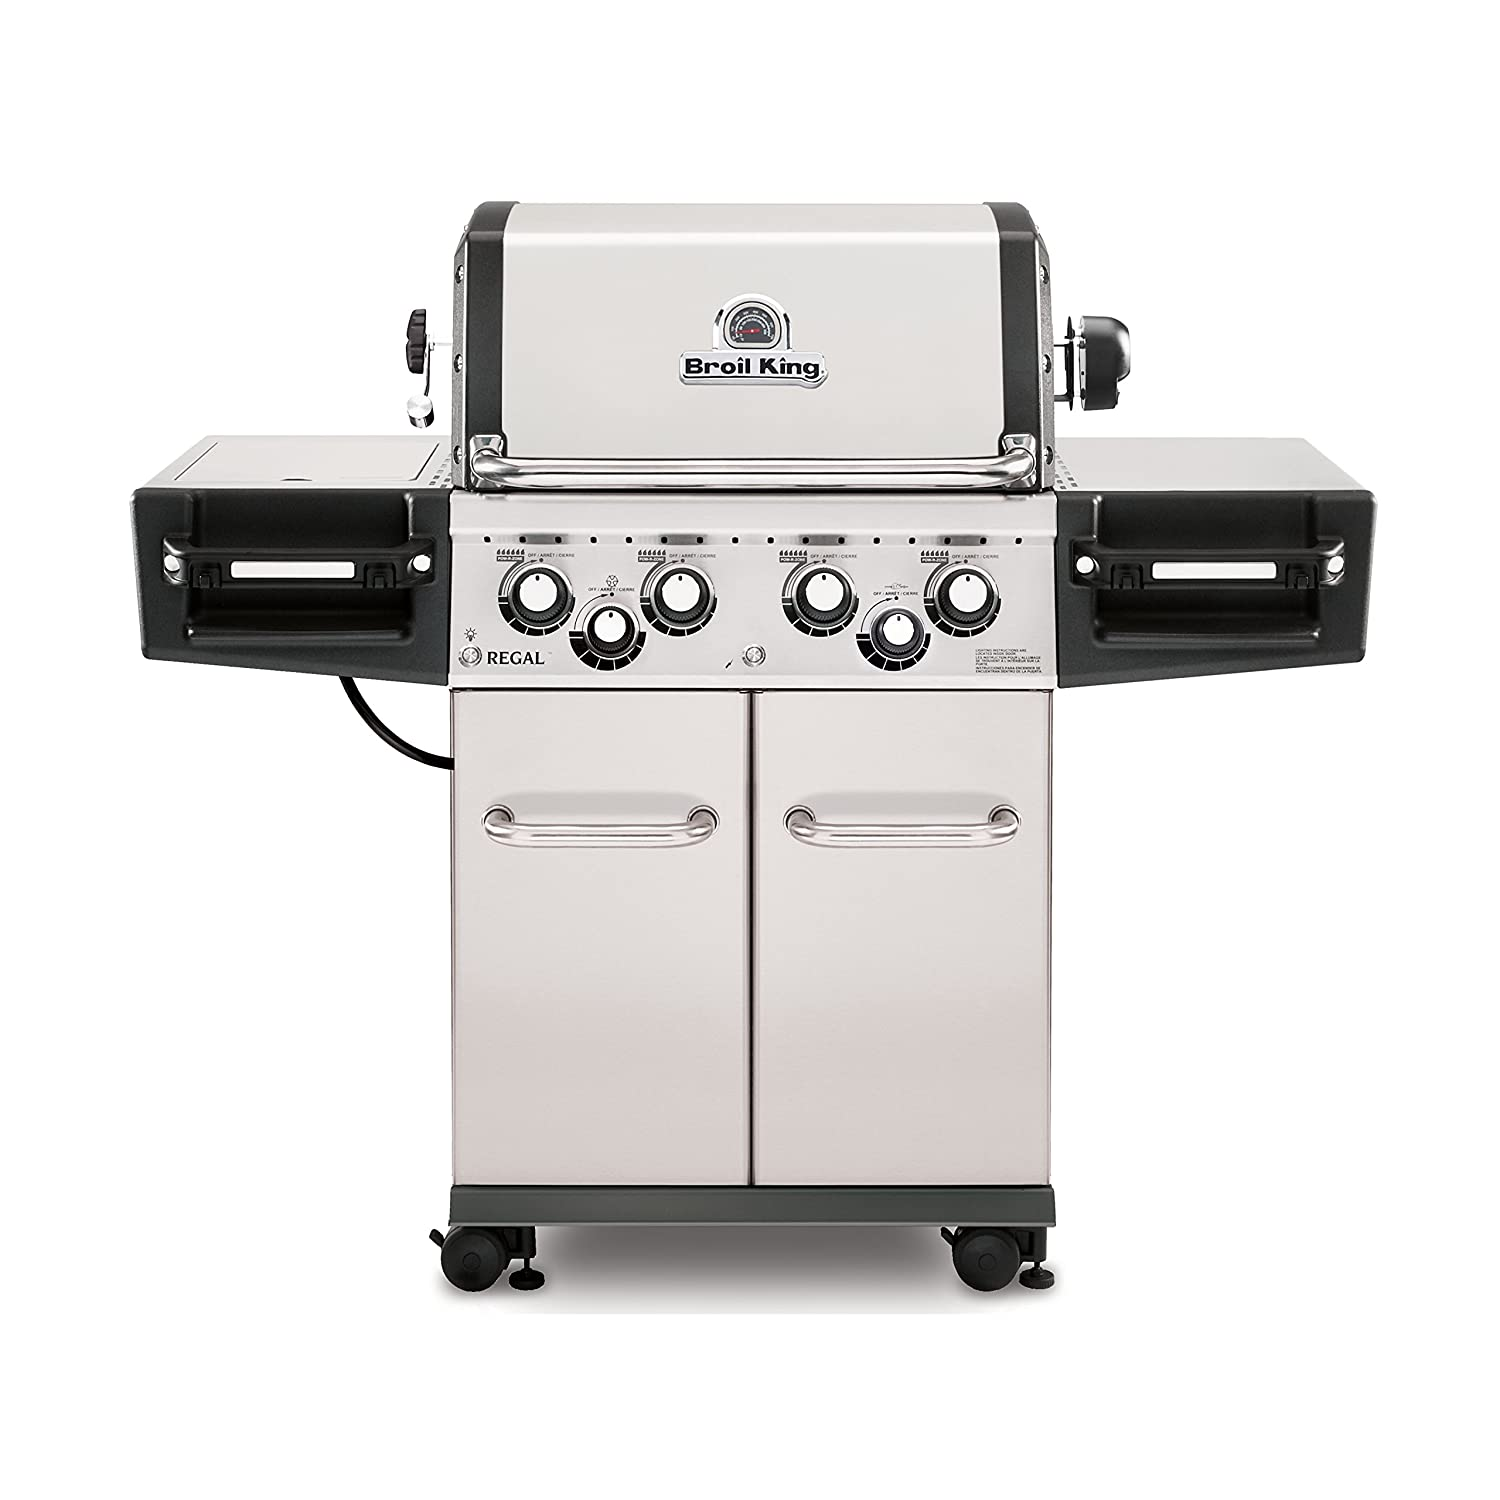 Broil King Regal S490 Pro 4-Burner Gas Grill